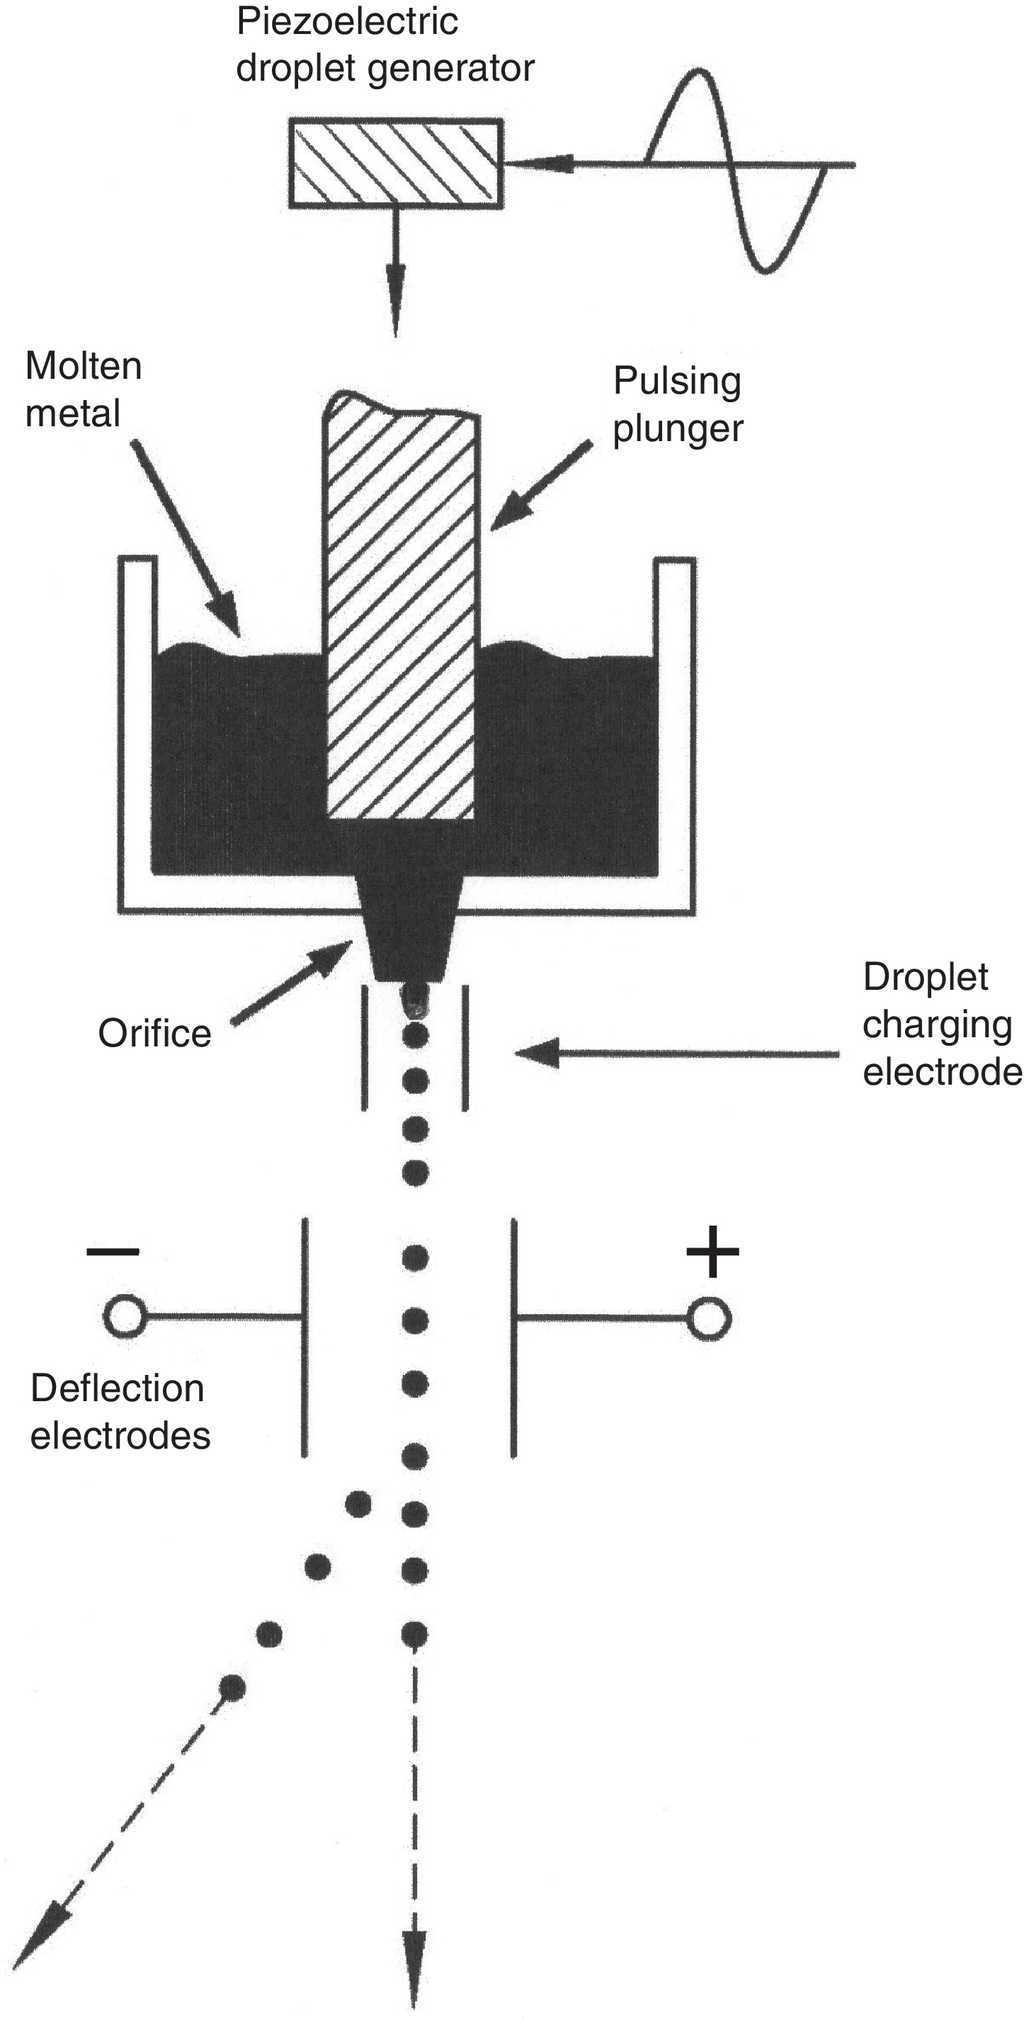 3d Metal Droplet Printing Development And Advanced Materials Penn Manufacturing Wiring Diagrams Generator Schematic Based On The Concept Of Orme Et Al